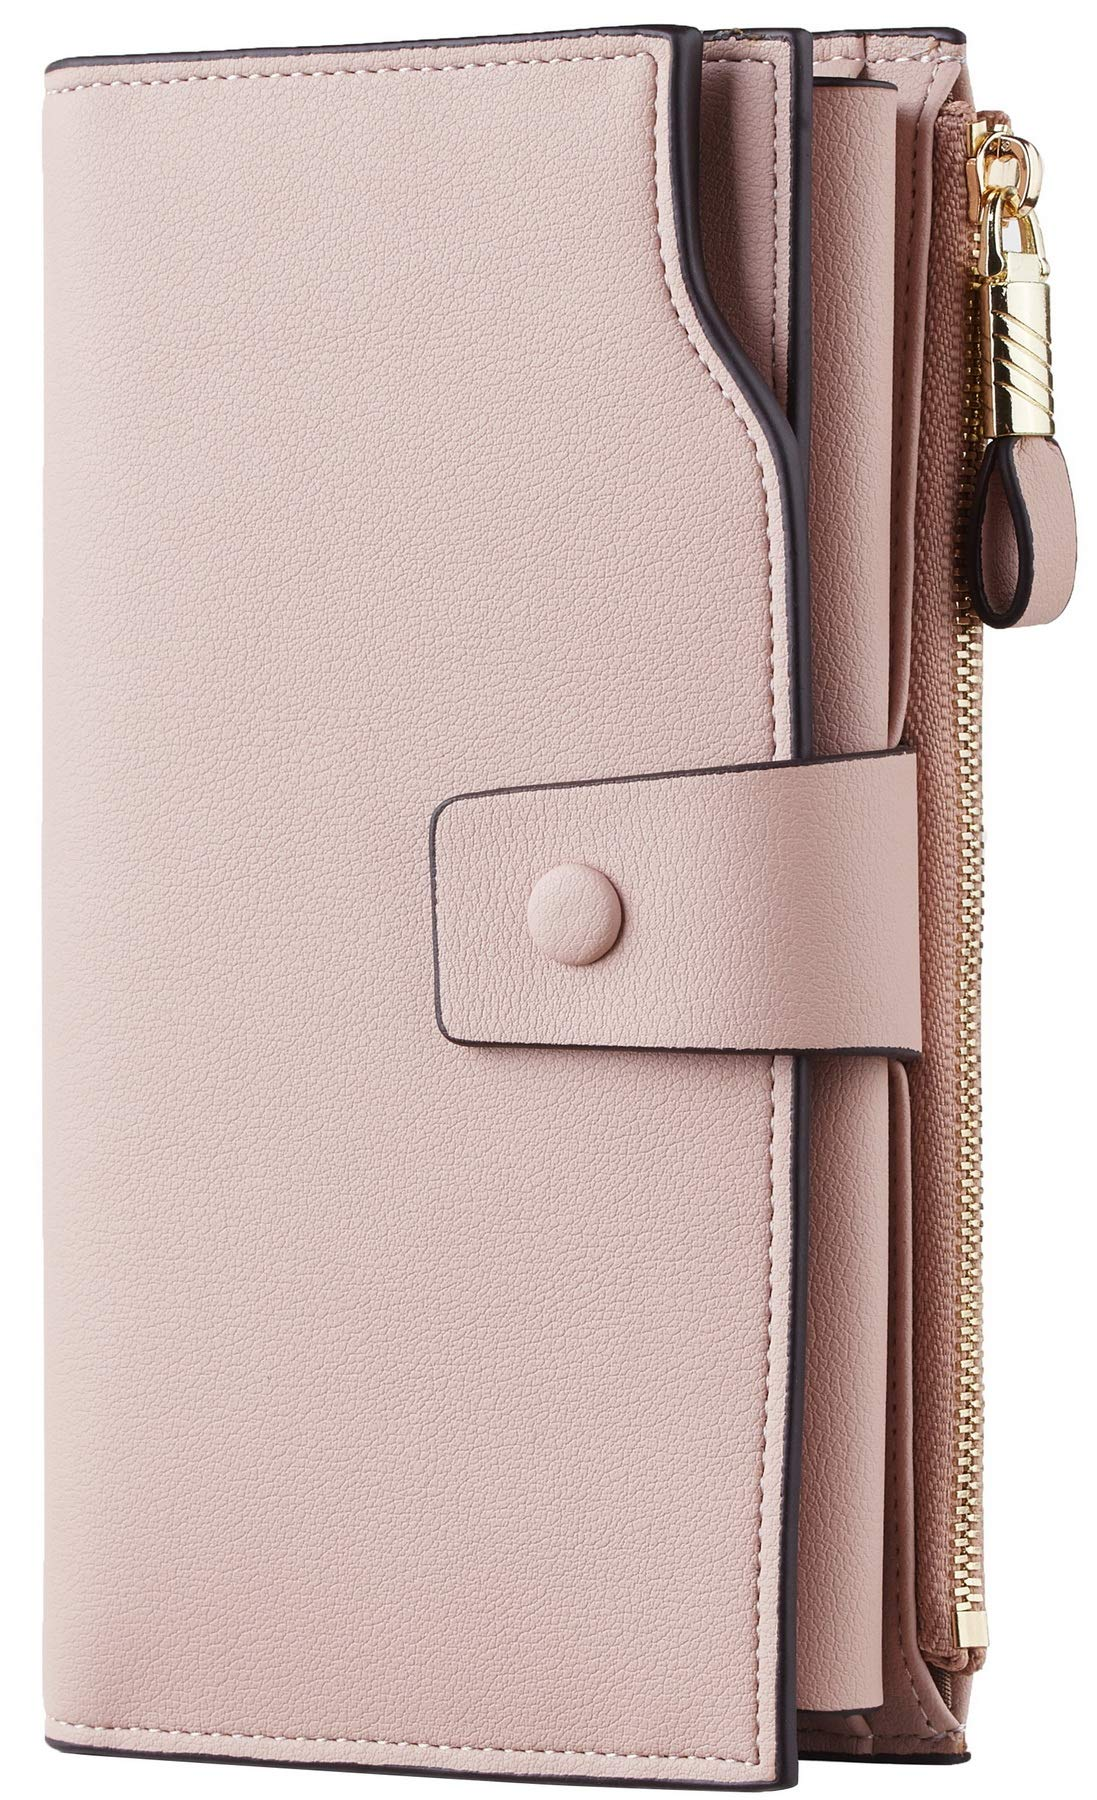 Travelambo Womens RFID Blocking Large Capacity Luxury Waxed Genuine Leather Clutch Wallet Multi Card Organizer (ReNapa Pink Champagne)